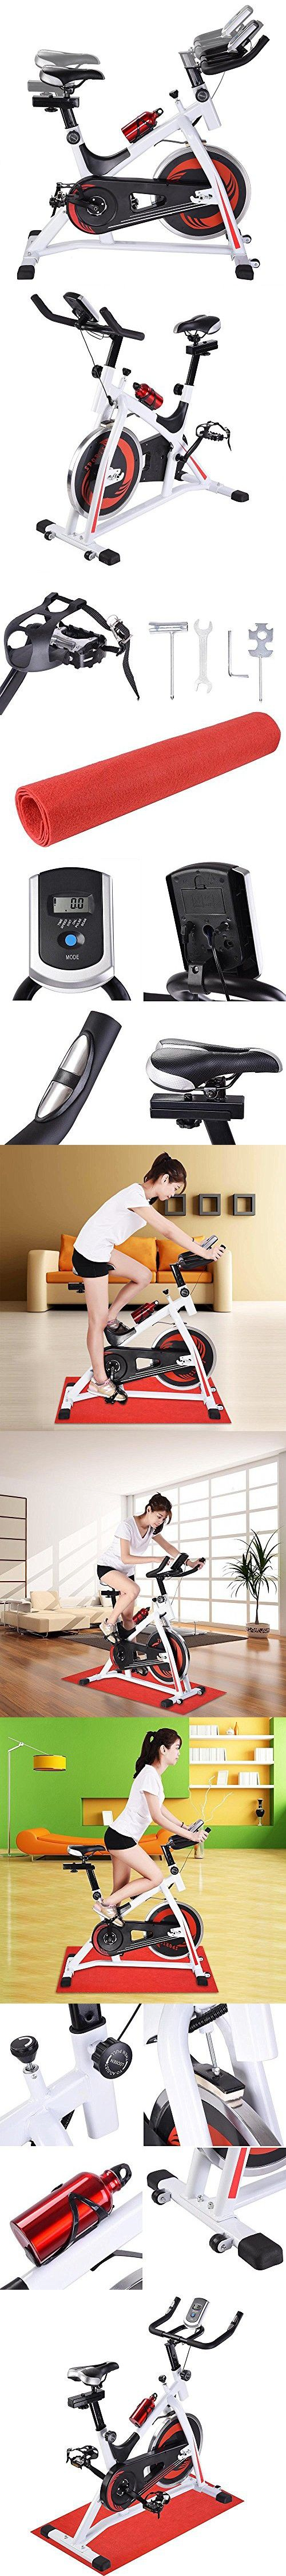 AMPERSAND SHOPS Spin Cycle Class Bike Cardio Fitness Exercise Indoor Training Spinning Cycling Equipment (White)